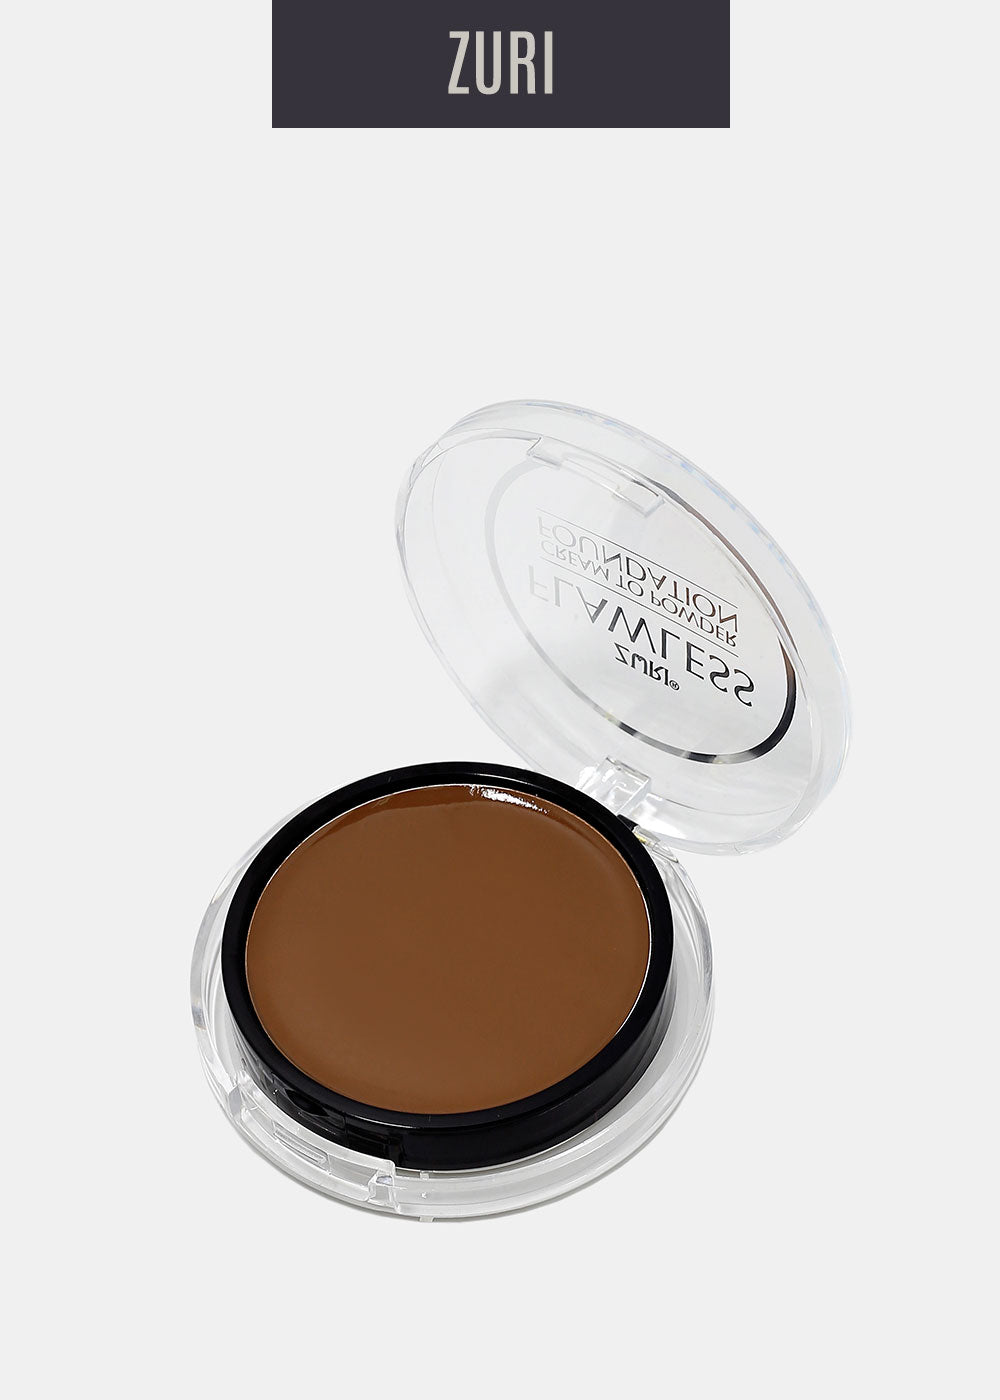 Zuri Cream To Powder Foundation- Suede